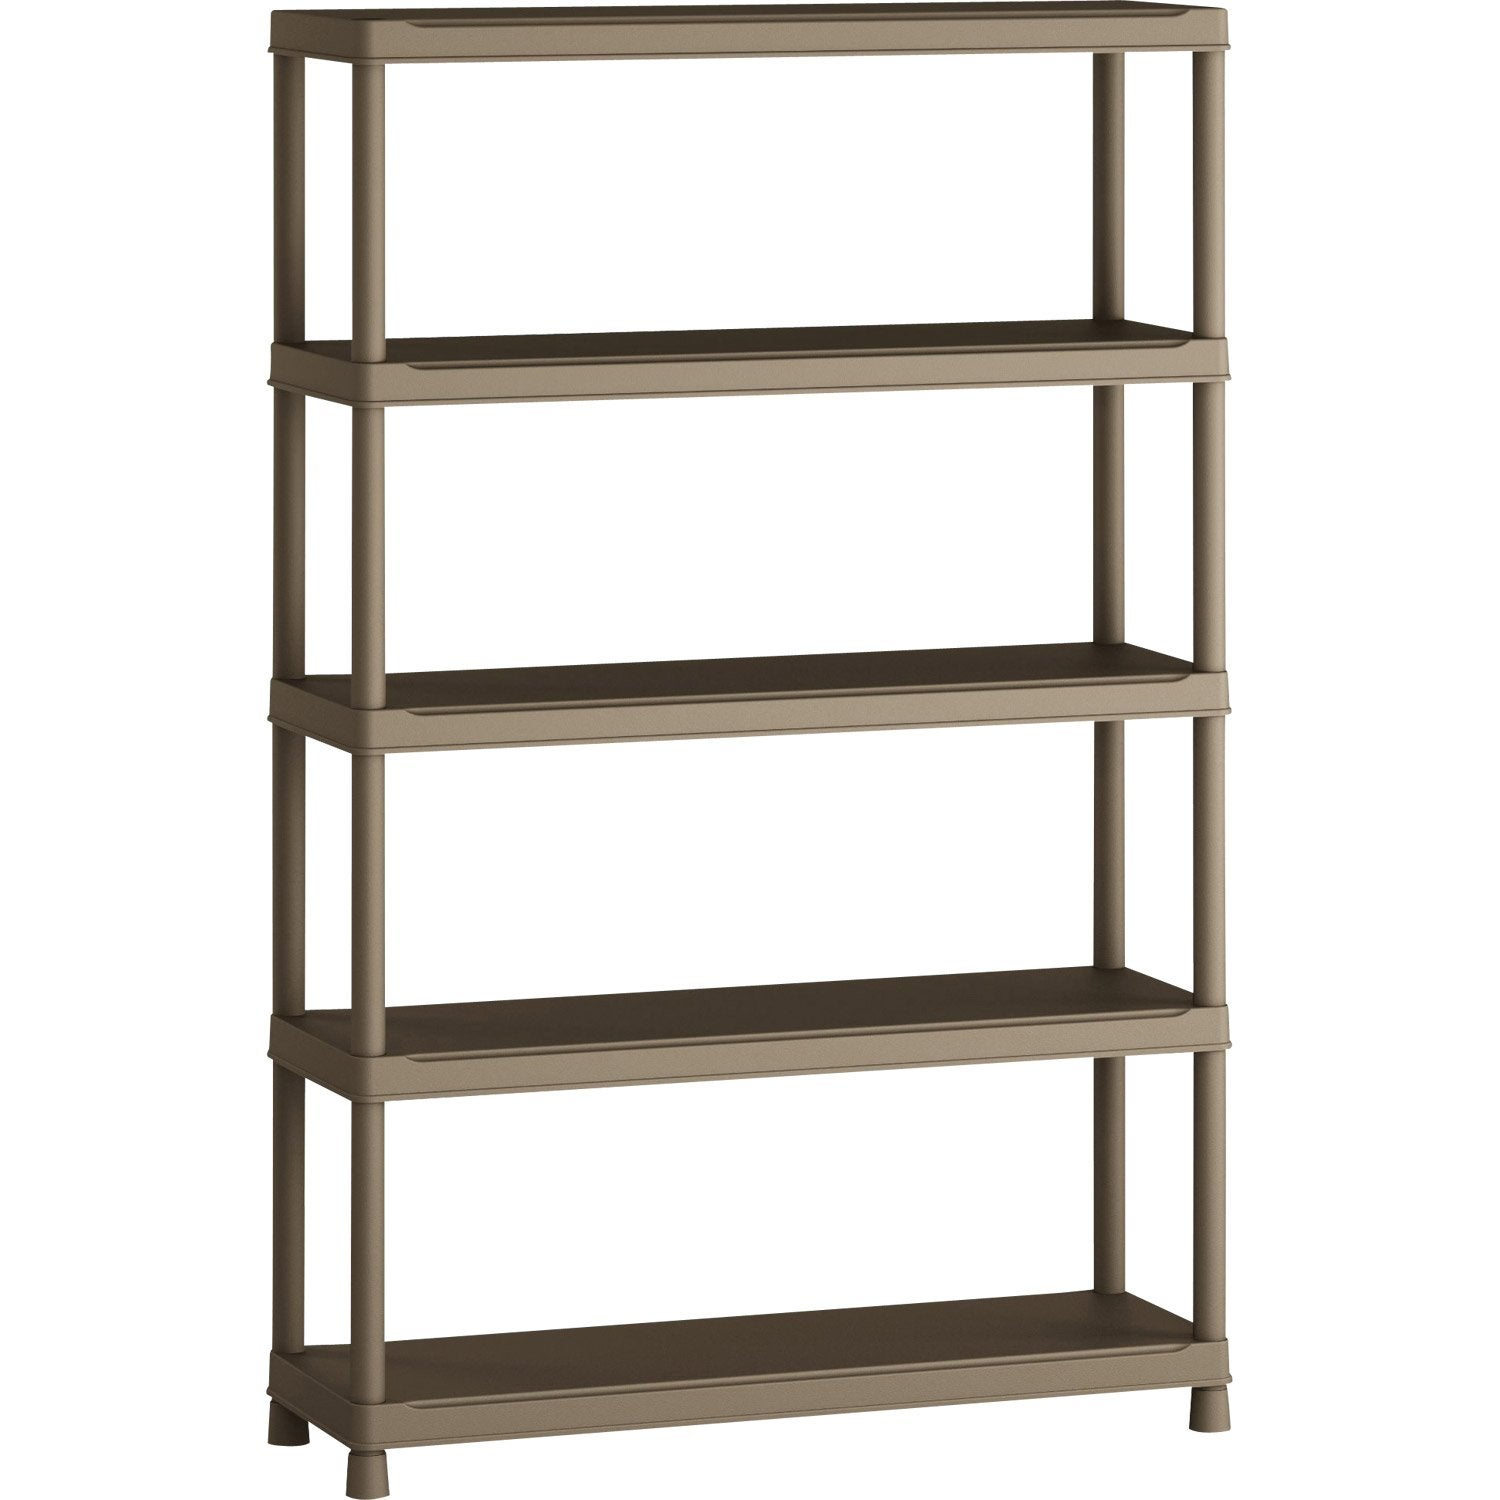 Etagere En Bois Leroy Merlin - Etag u00e8re en résine 5 tablettes SPACEO, H181xL120xP40 cm Leroy Merlin